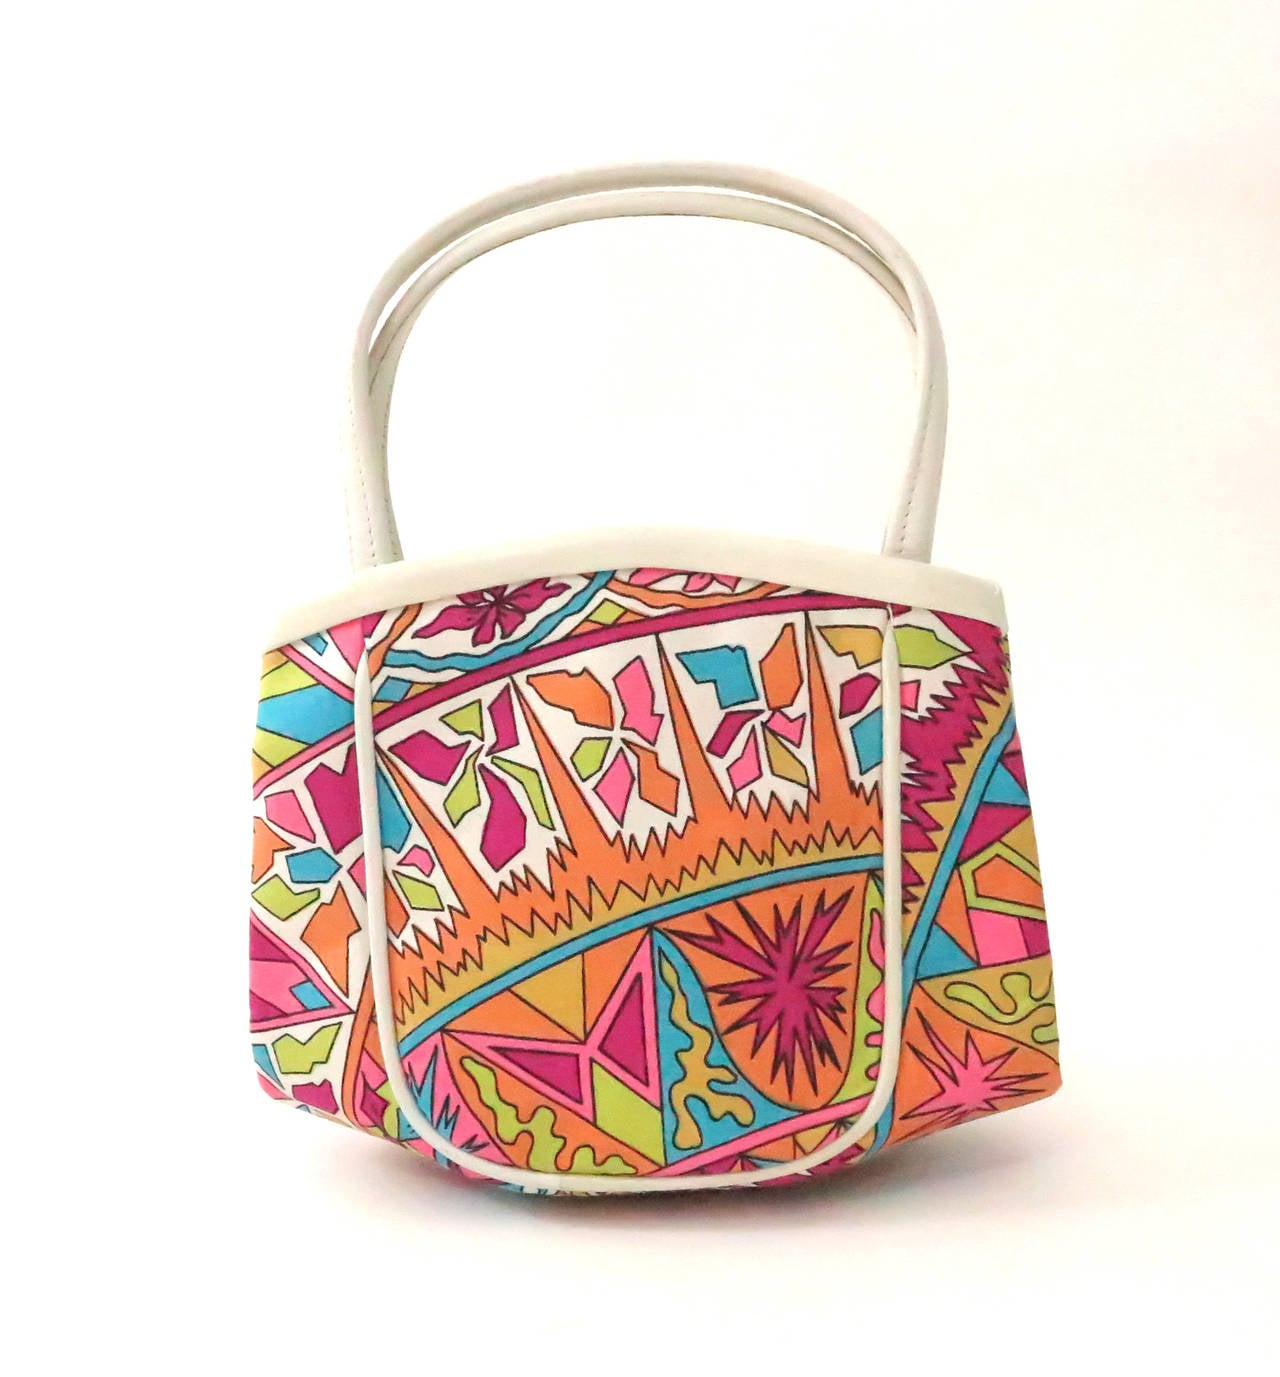 Vintage Pucci silk print & leather handbag In Excellent Condition For Sale In West Palm Beach, FL